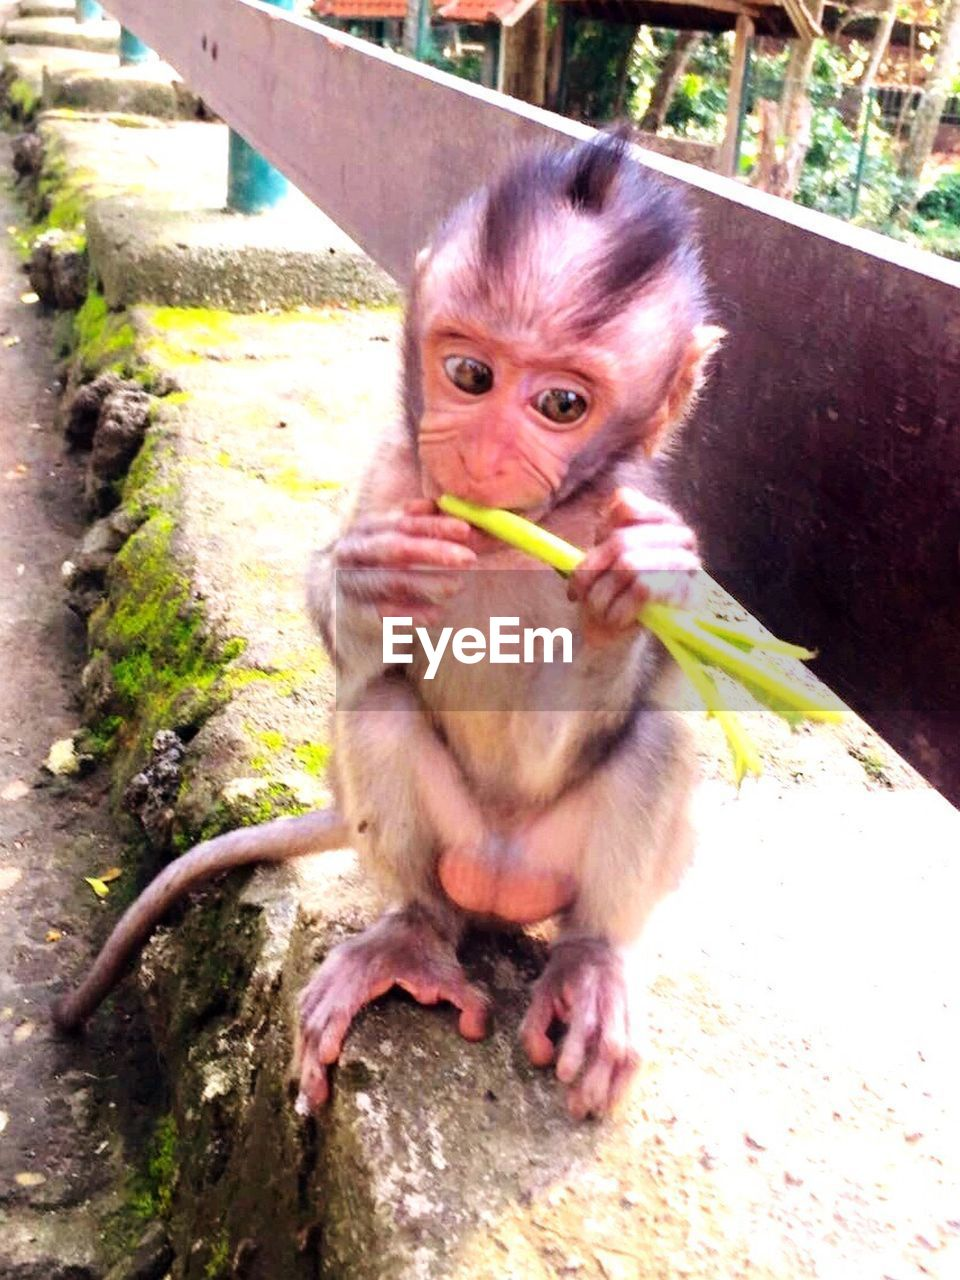 monkey, animal themes, infant, looking at camera, animals in the wild, outdoors, portrait, one animal, day, mammal, animal wildlife, sitting, full length, nature, close-up